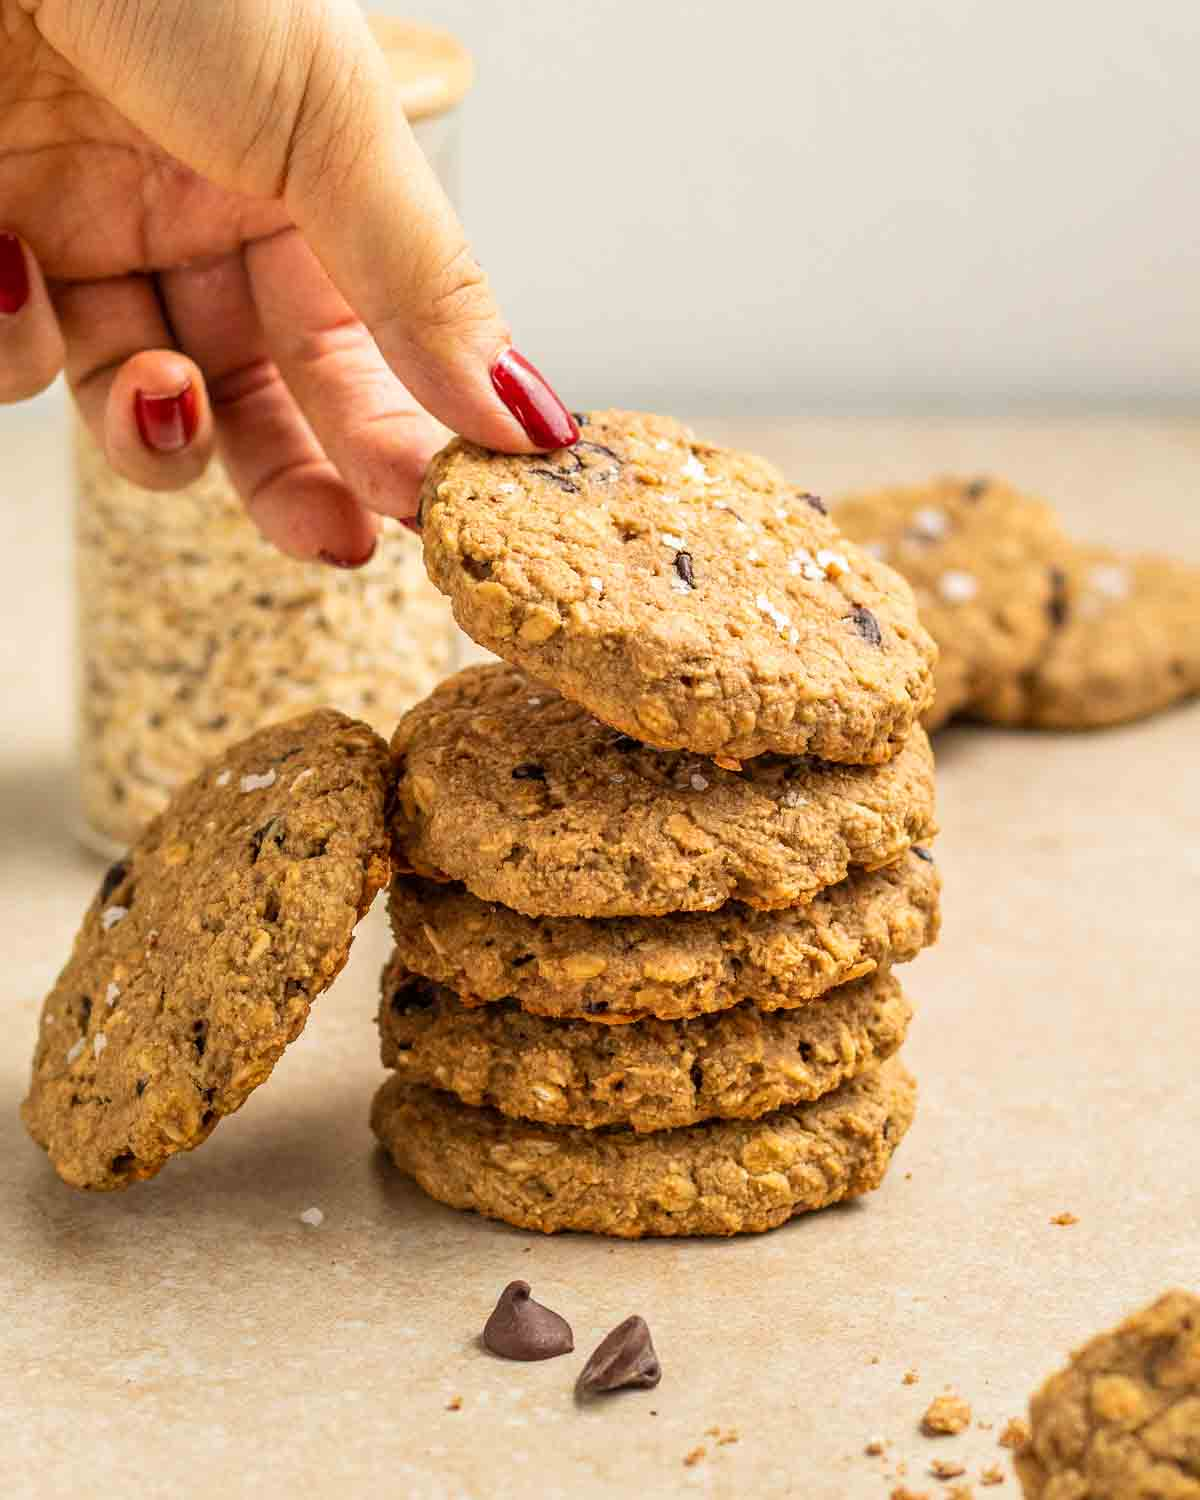 Taking out a cookie from a stack of them with jar of oats and more cookies in the background.